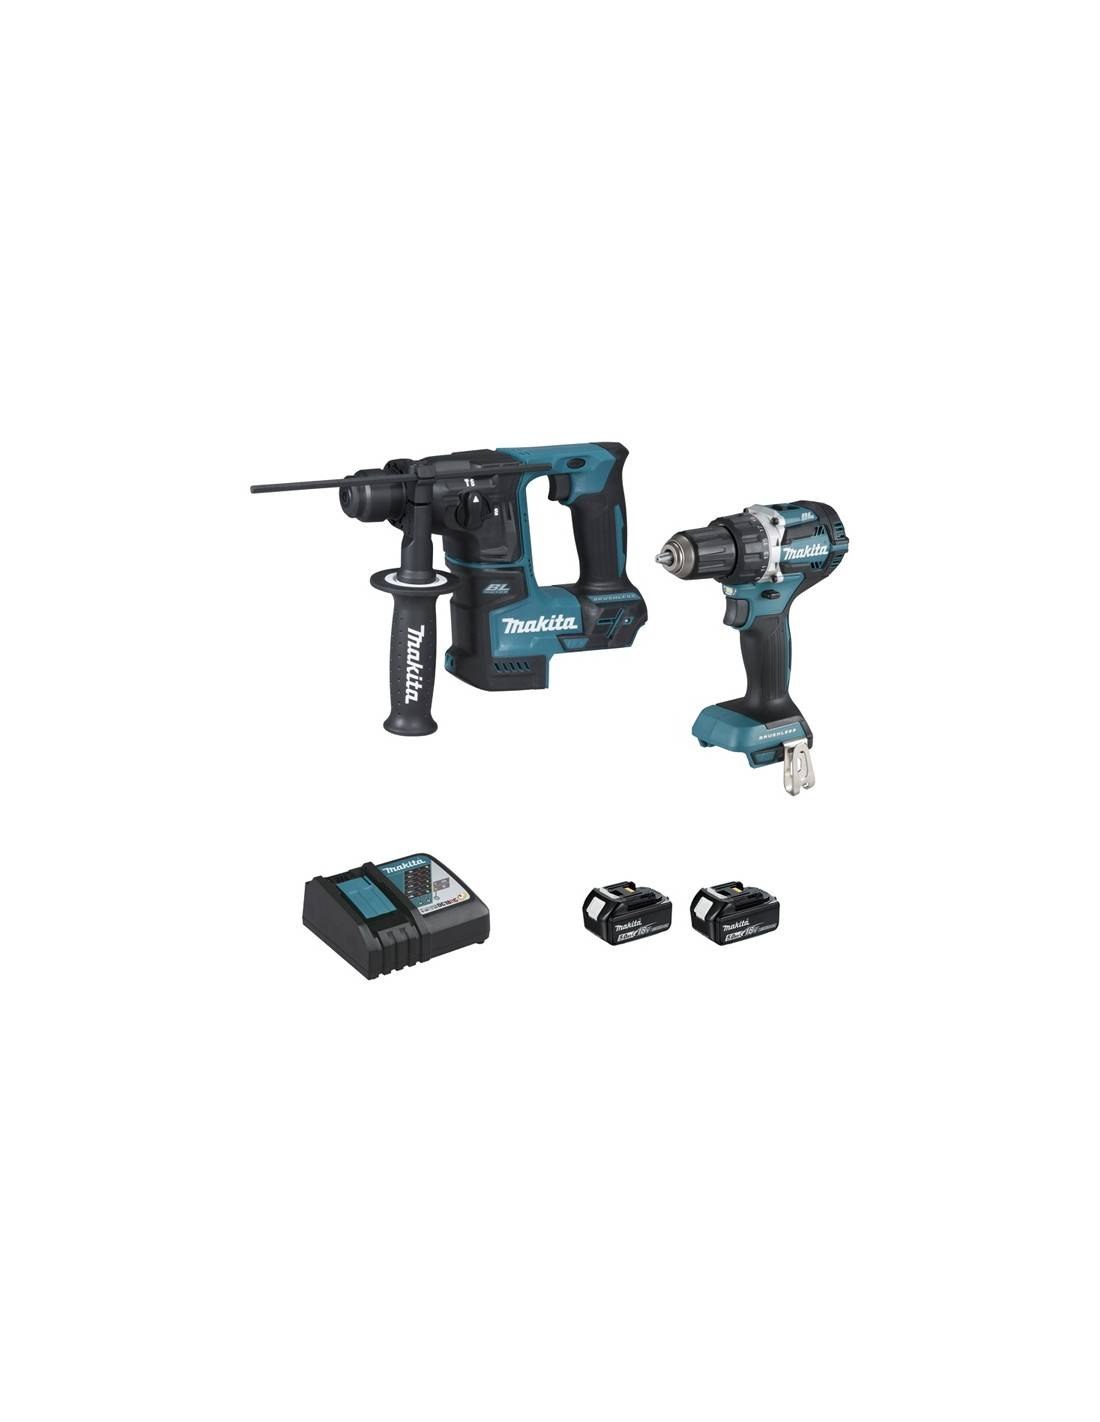 Pack MAKITA Perceuse visseuse DDF484 + Perforateur DHR171 (2X5AH) en coffret MAKPAC DLX2271TJ